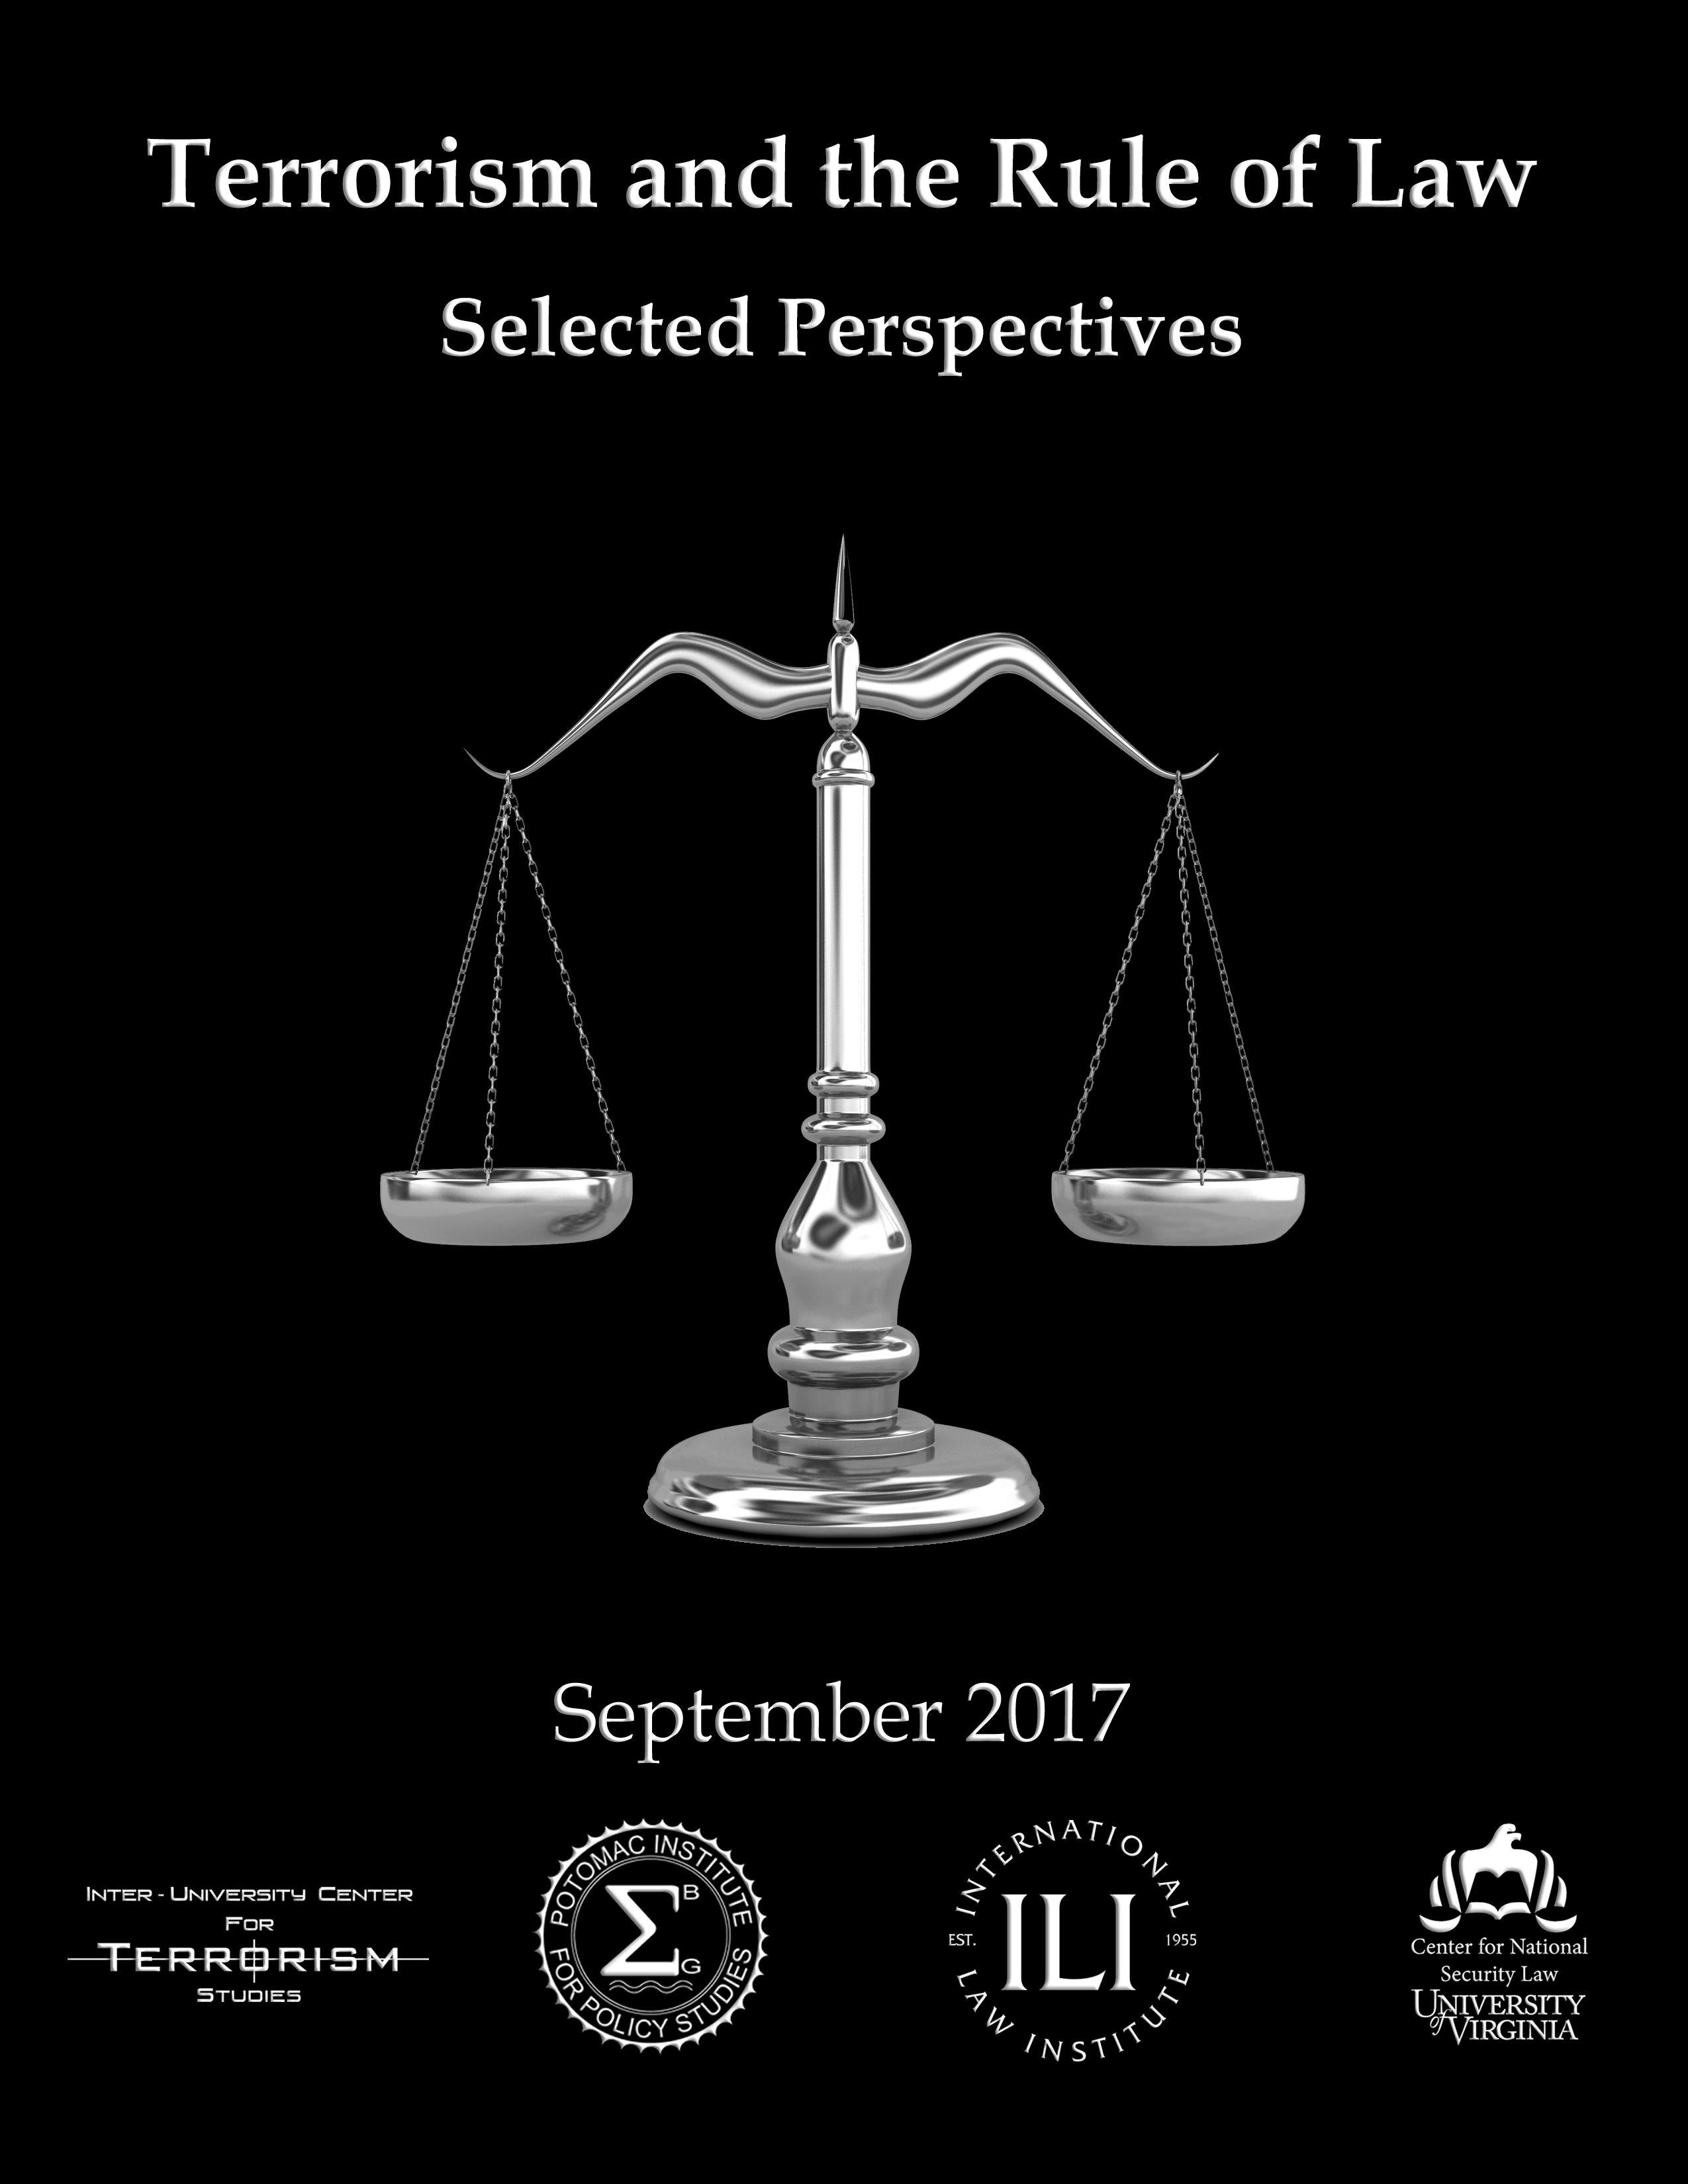 Terrorism and the Rule of Law: Selected Perspectives